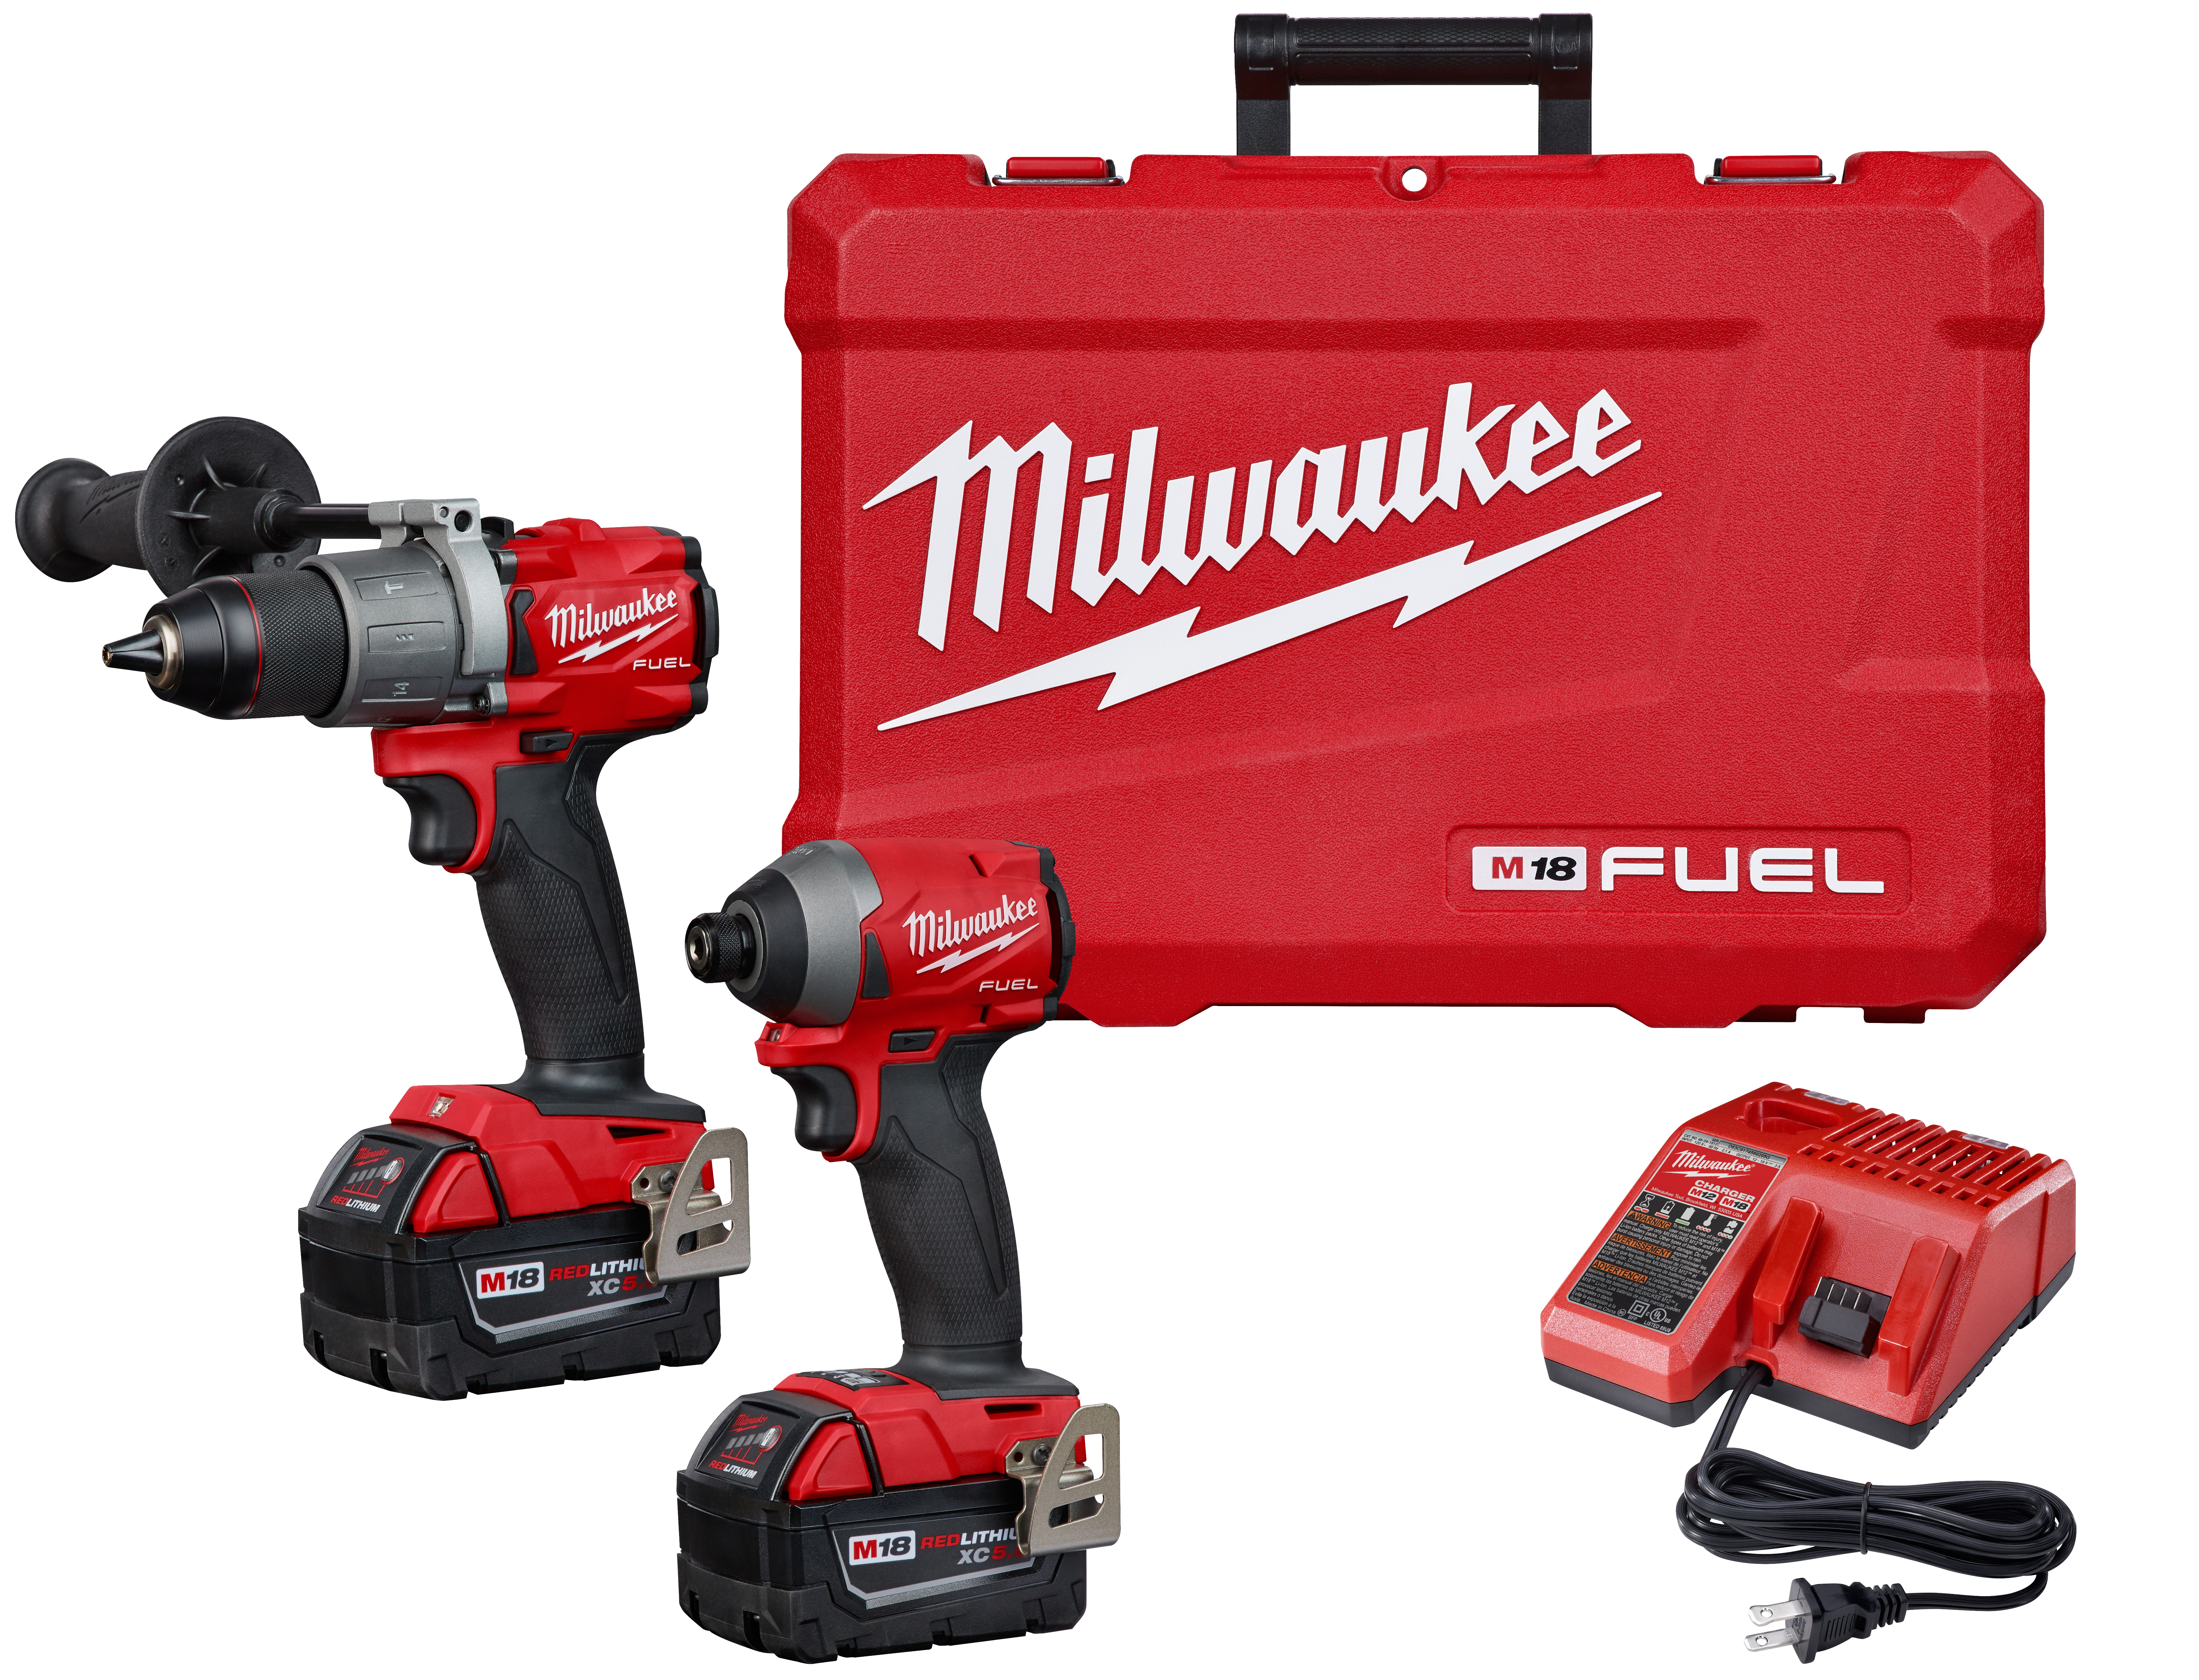 Milwaukee® M18™ FUEL™ 2997-22 2-Tool Cordless Combination Kit, Tools: Hammer Drill, Impact Driver, 18 VDC, 5 Ah Lithium-Ion REDLITHIUM™ Battery